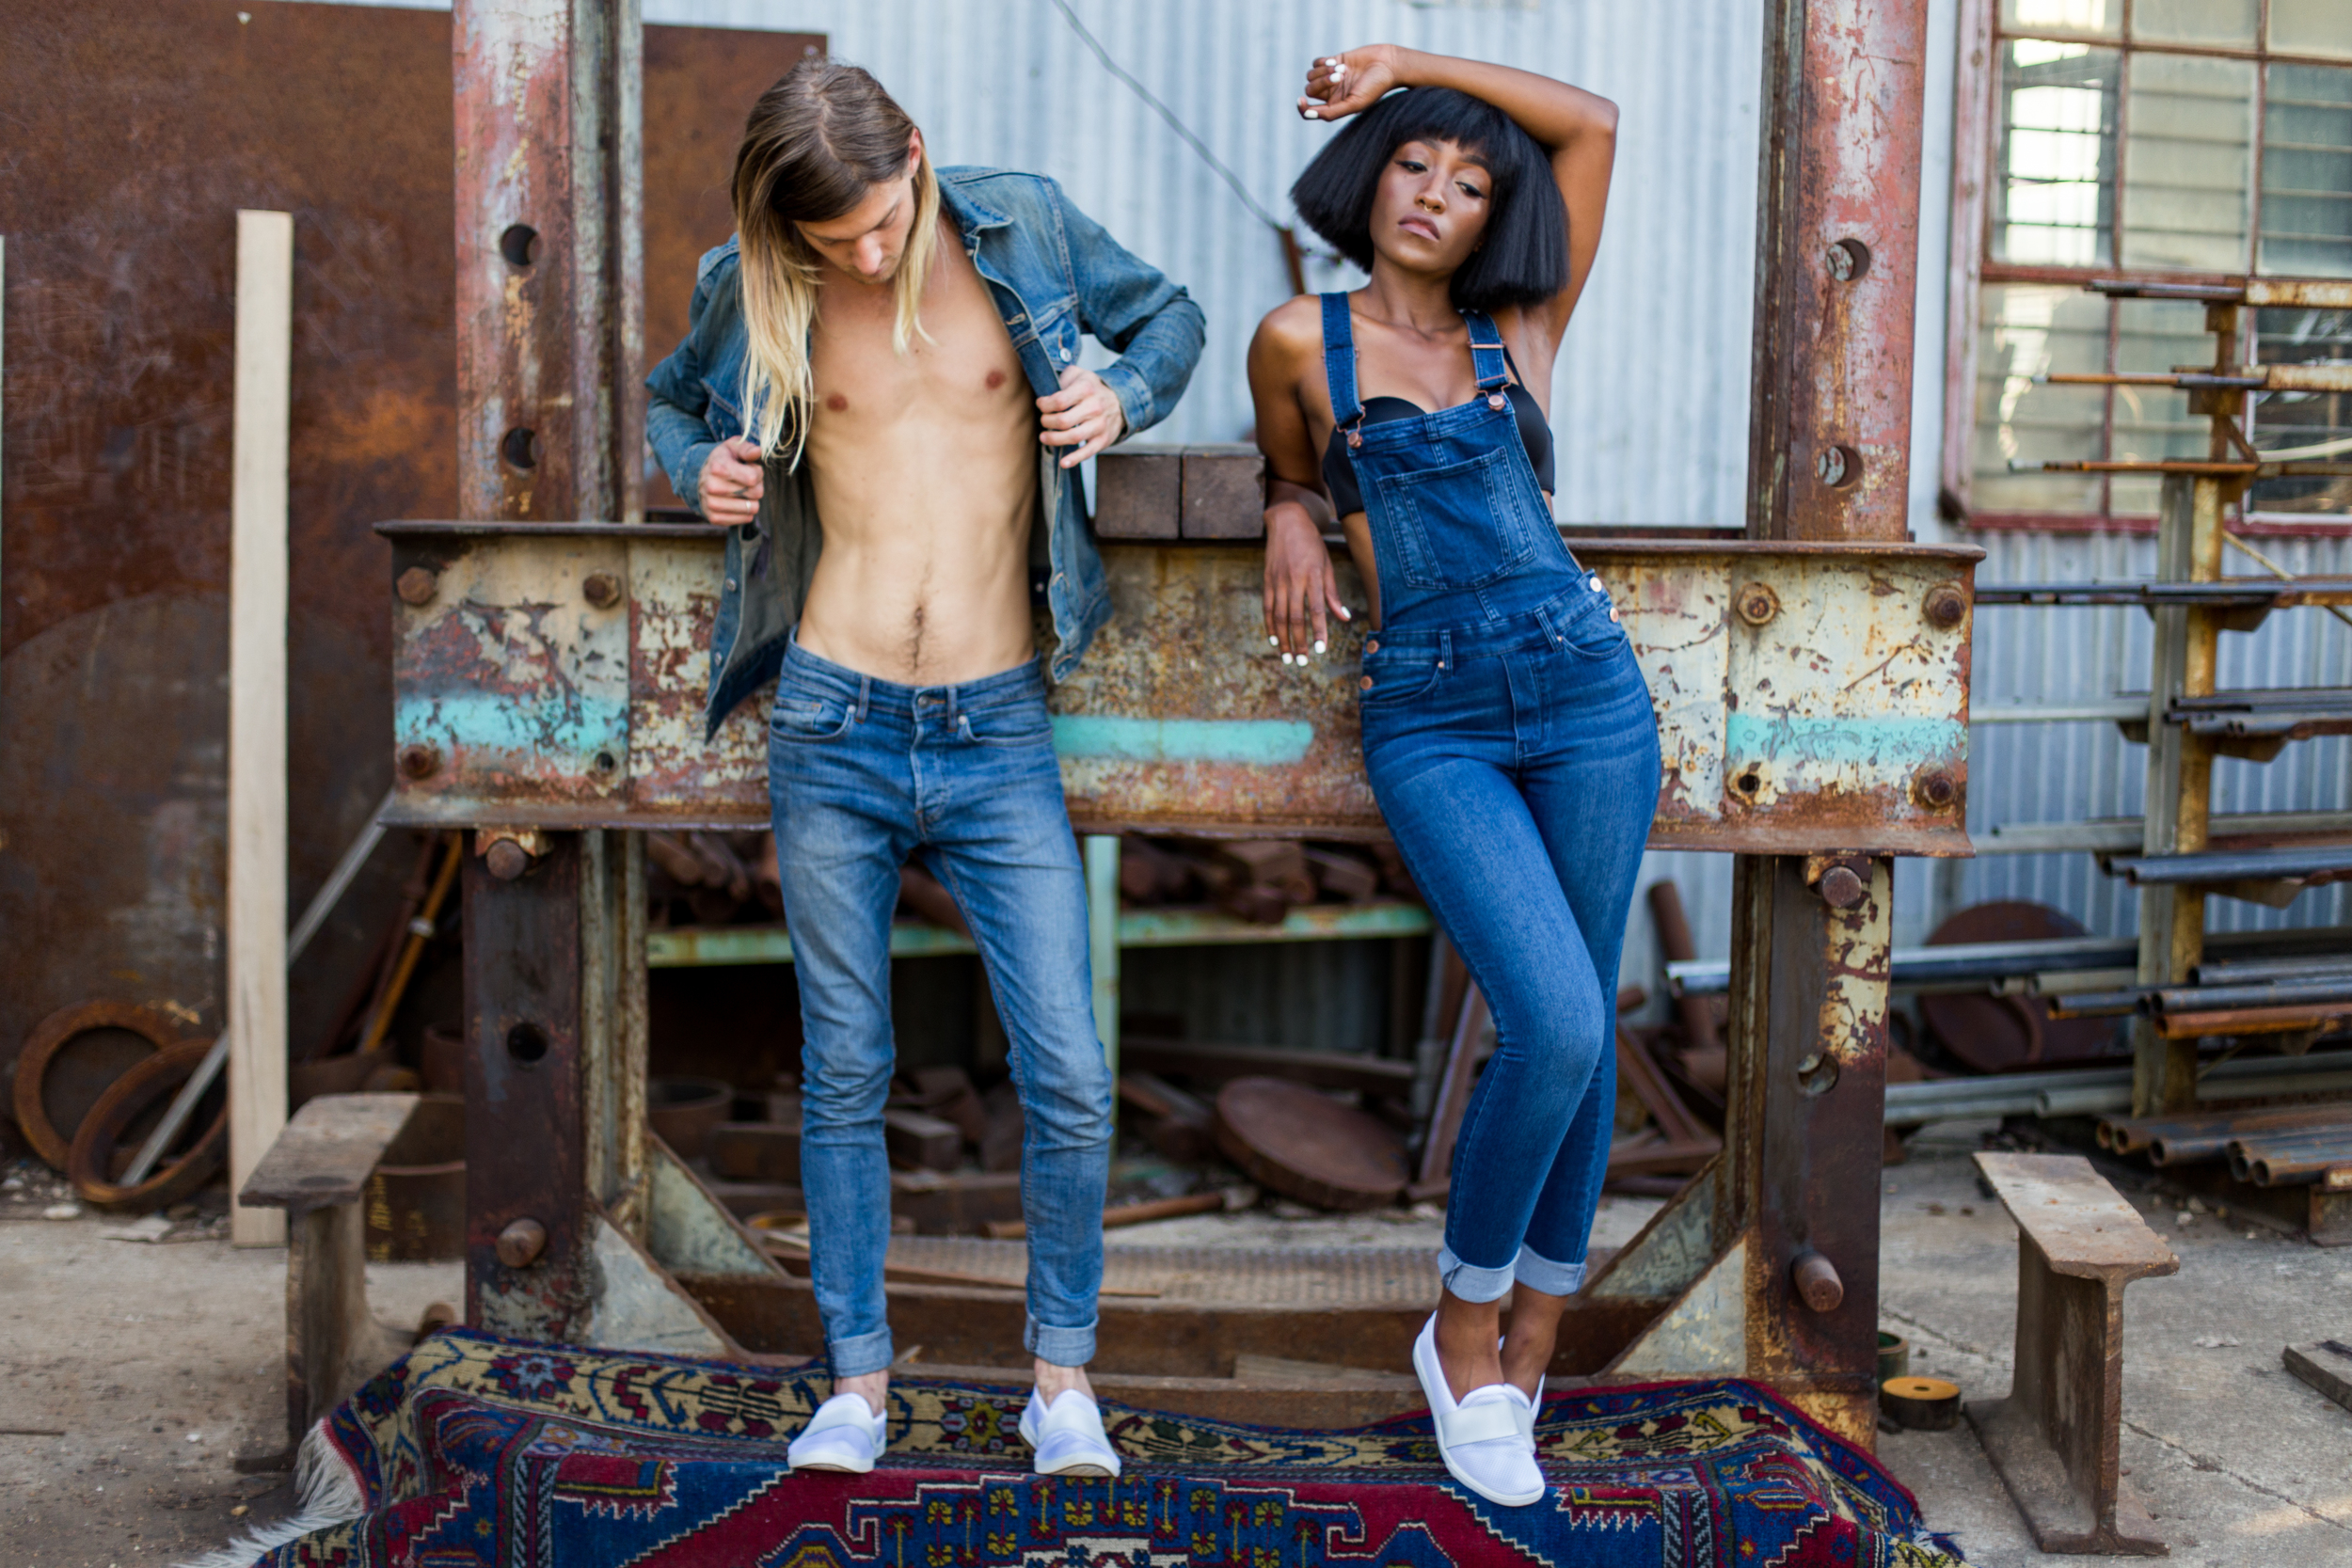 Photo by Monique Rodriguez, stylist Divinity Veloz, models Meighan Zai'Moy and Tyler Ruby with clothing from Crafts and Arts